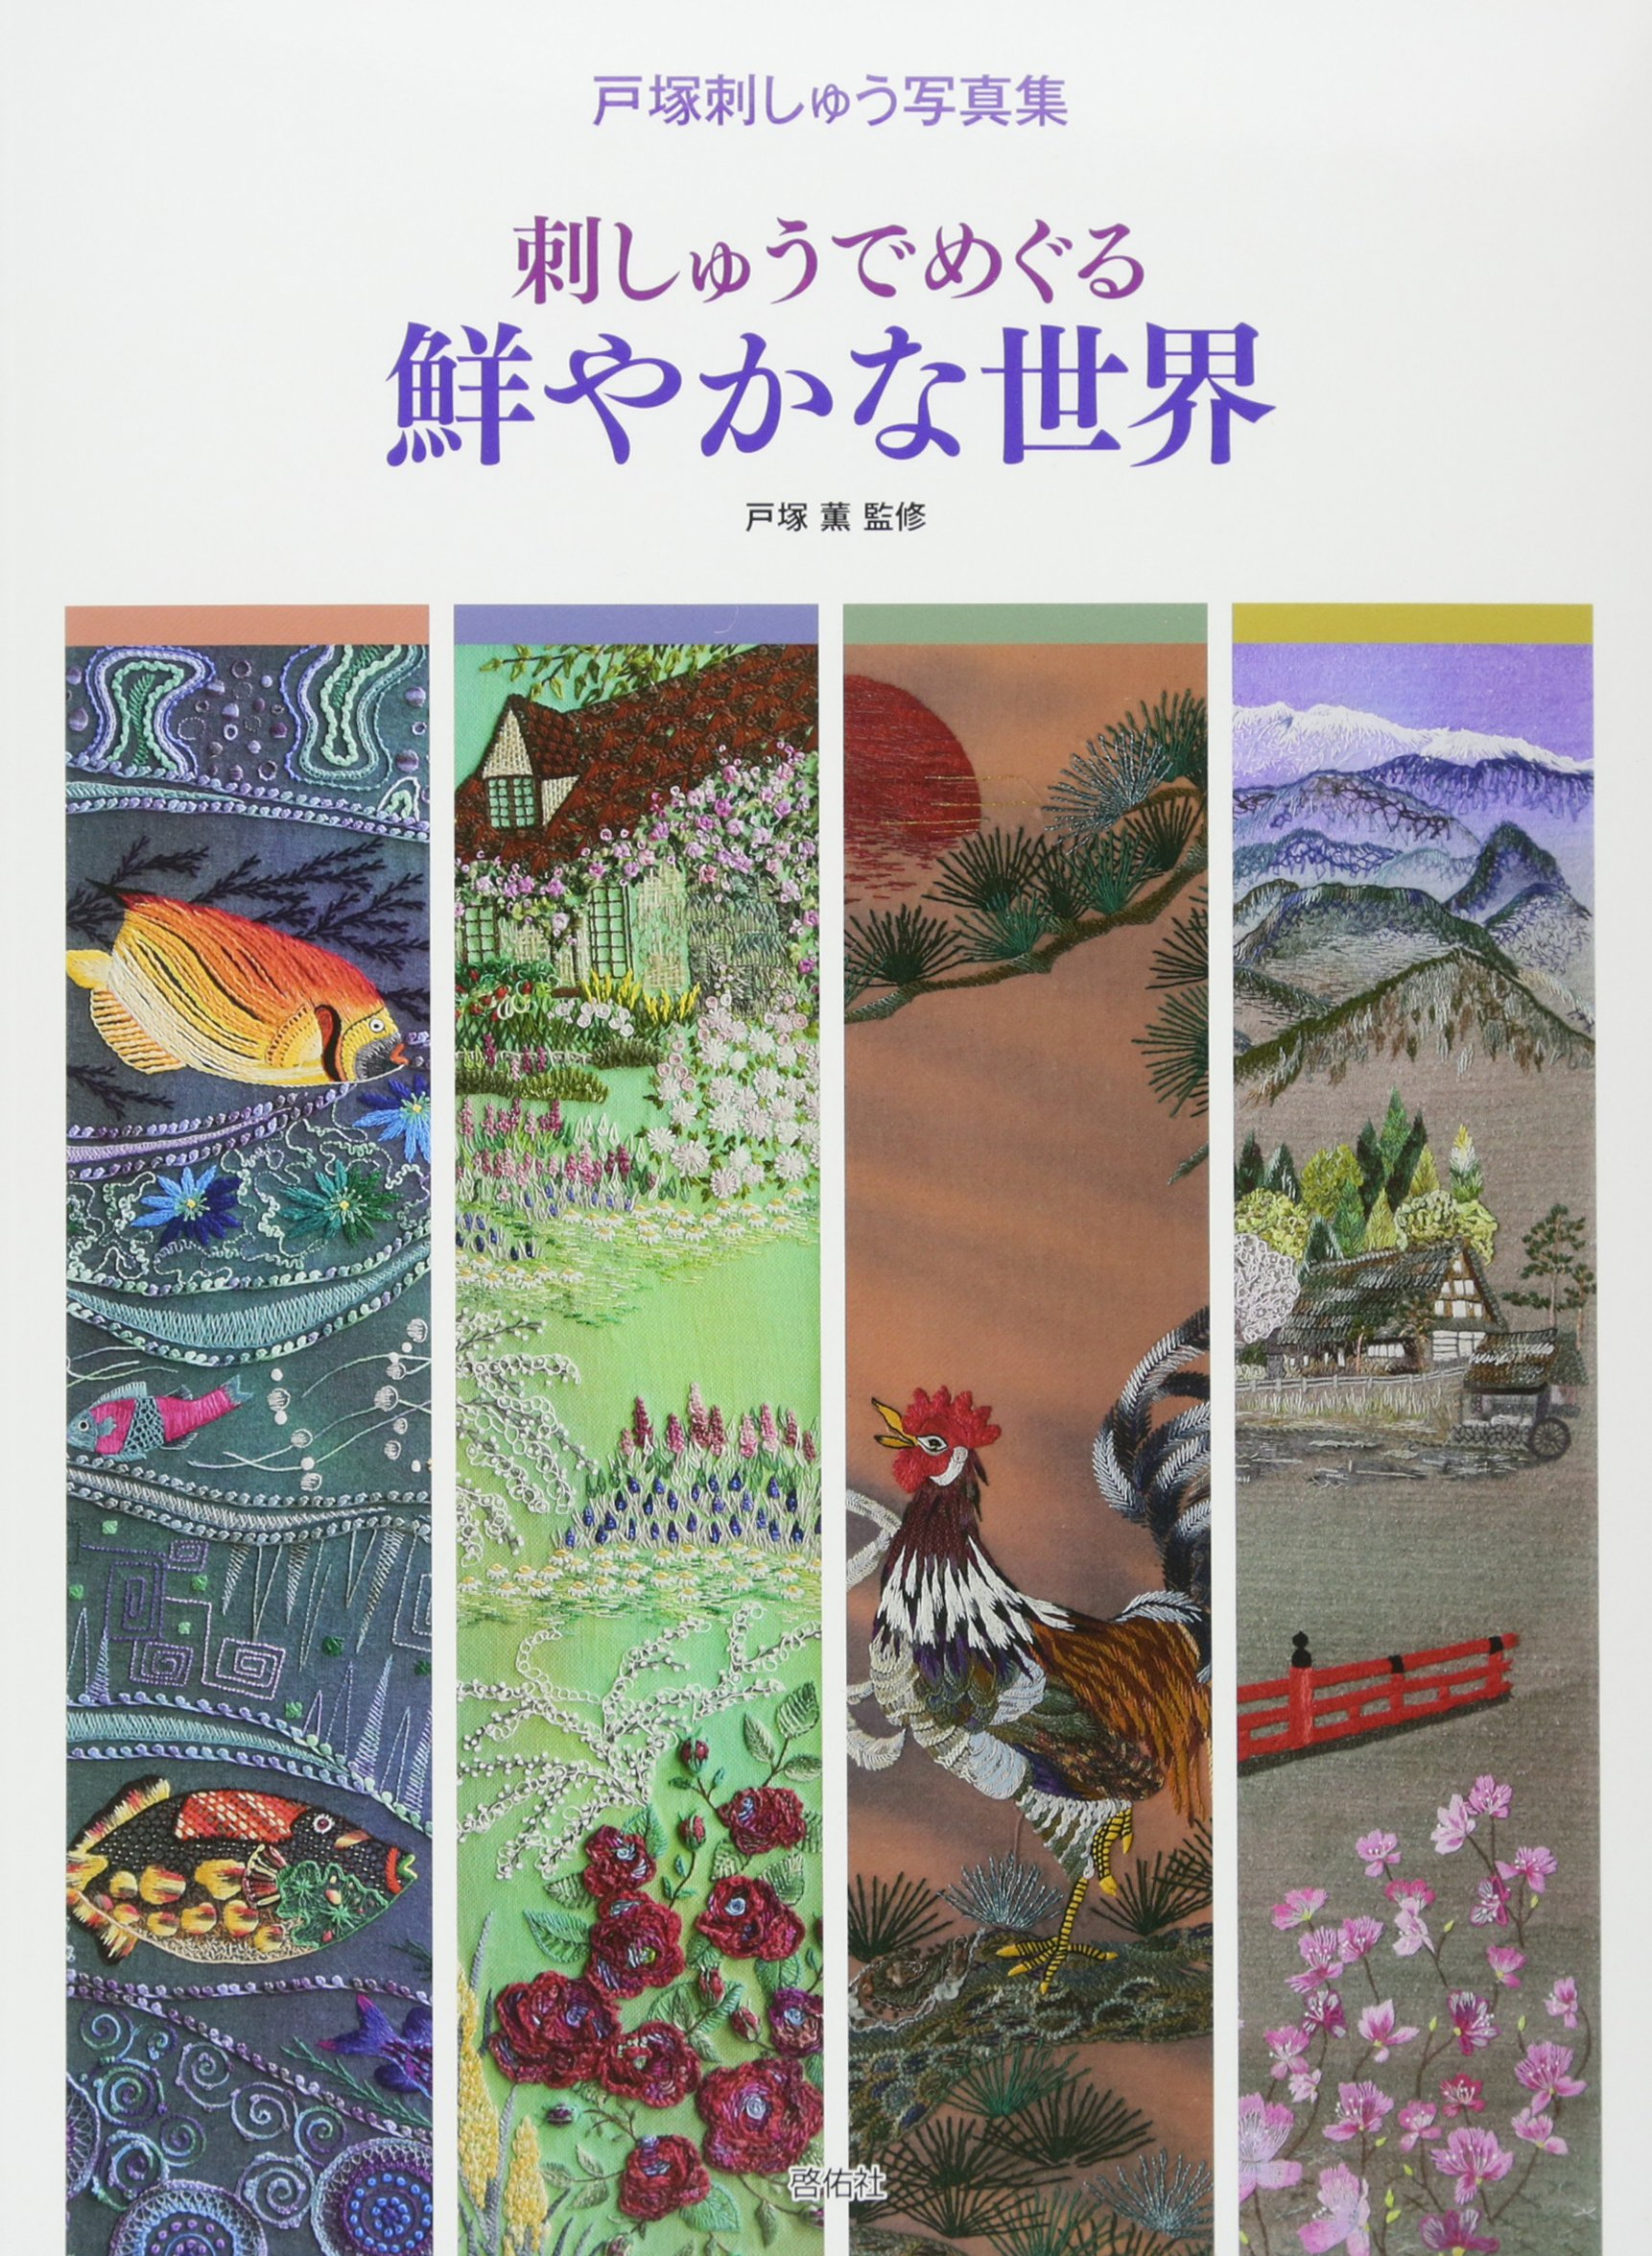 Vivid world over in Totsuka embroidery